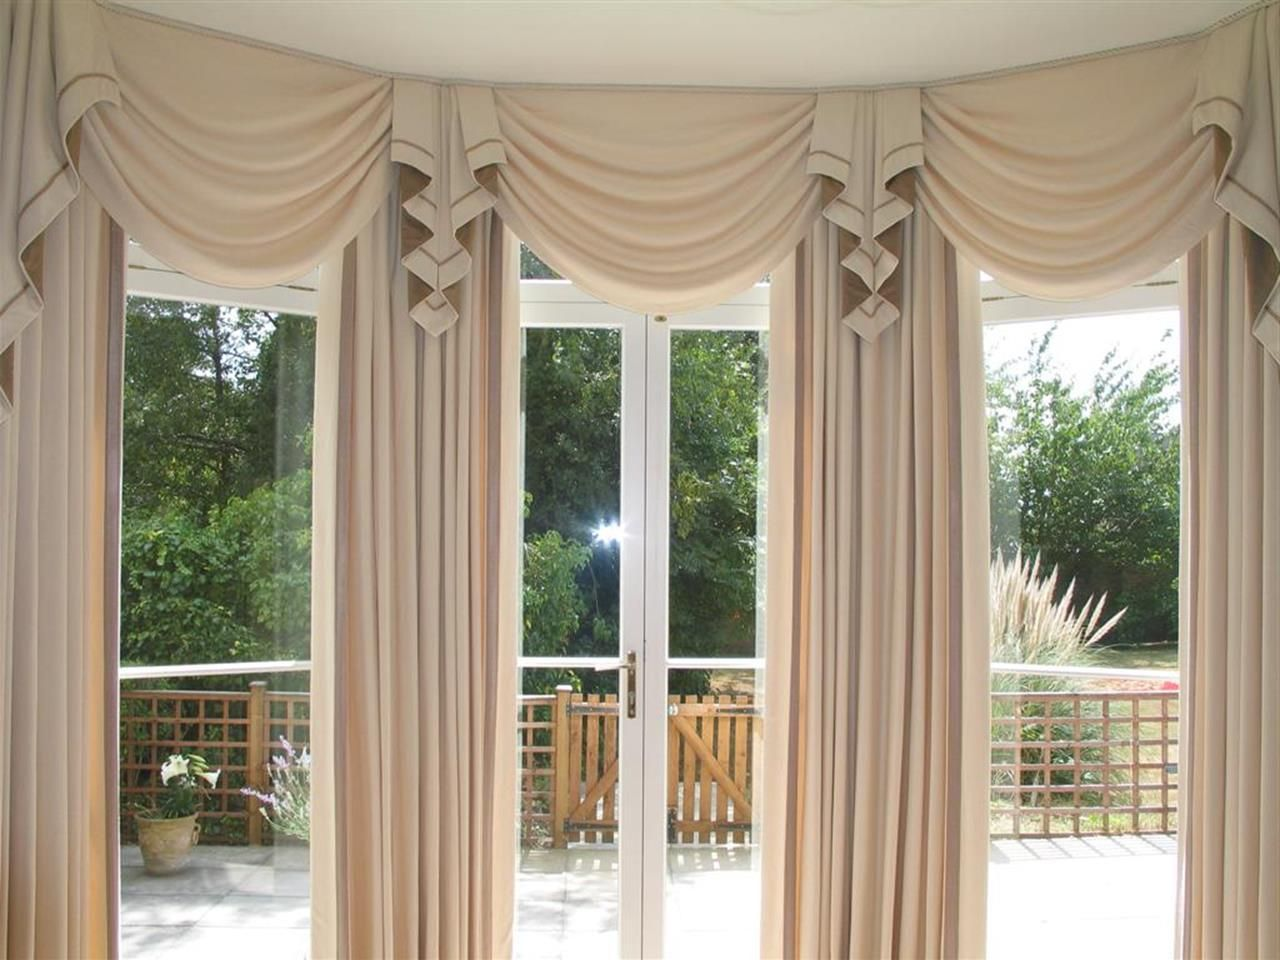 Best Window Design By Using Cool Curtains At Jcpenney 12   Big ...